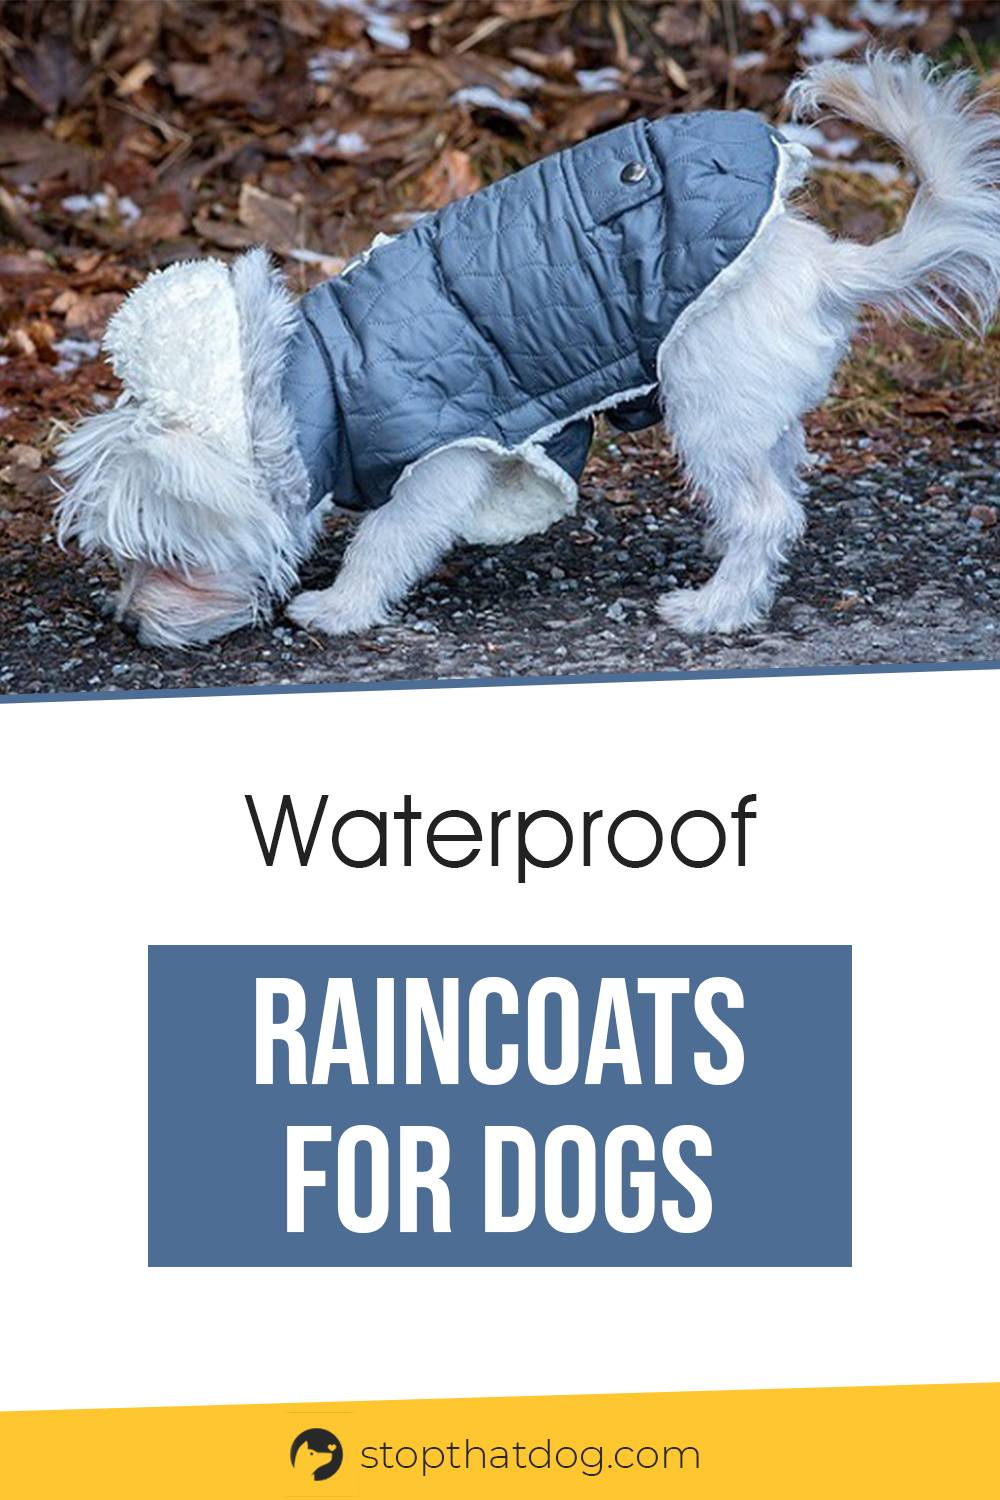 Waterproof Raincoats For Dogs - The Definitive Guide (2020)